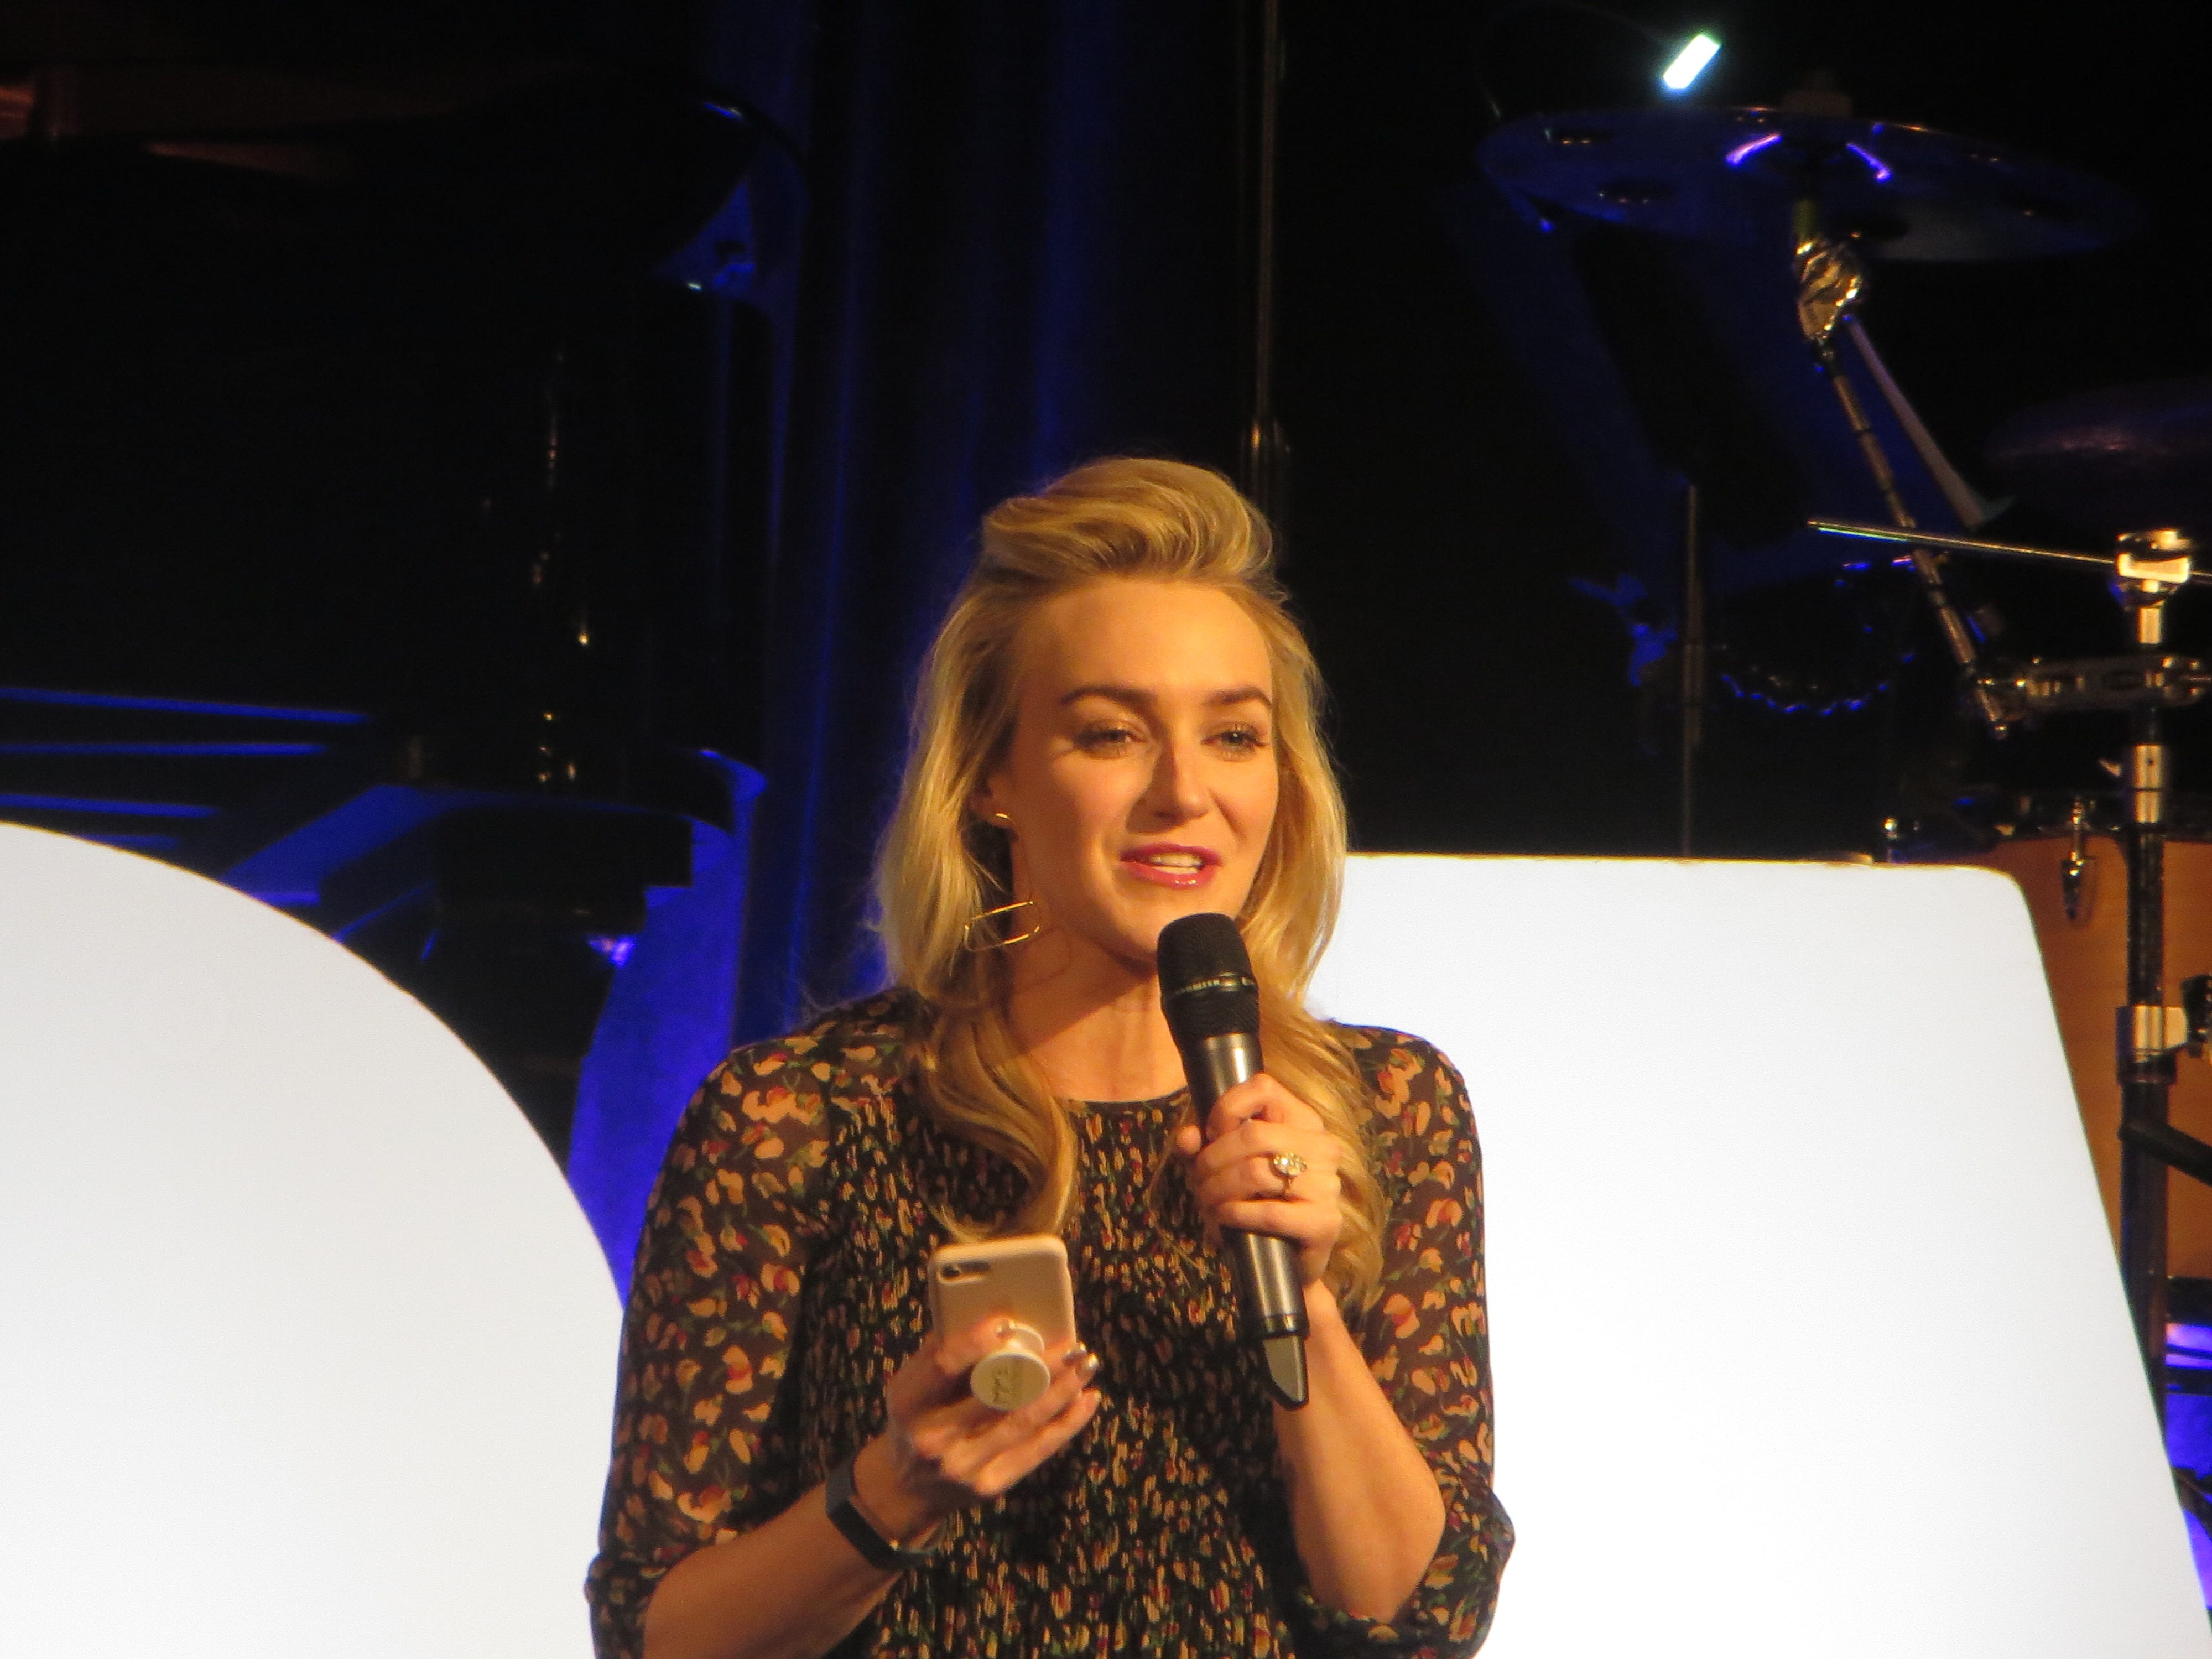 Betsy Wolfe performs during BroadwayCon Jukebox at BroadwayCon 2019, held Jan. 11 to 13, 2019, at the New York Hilton Midtown in Manhattan.